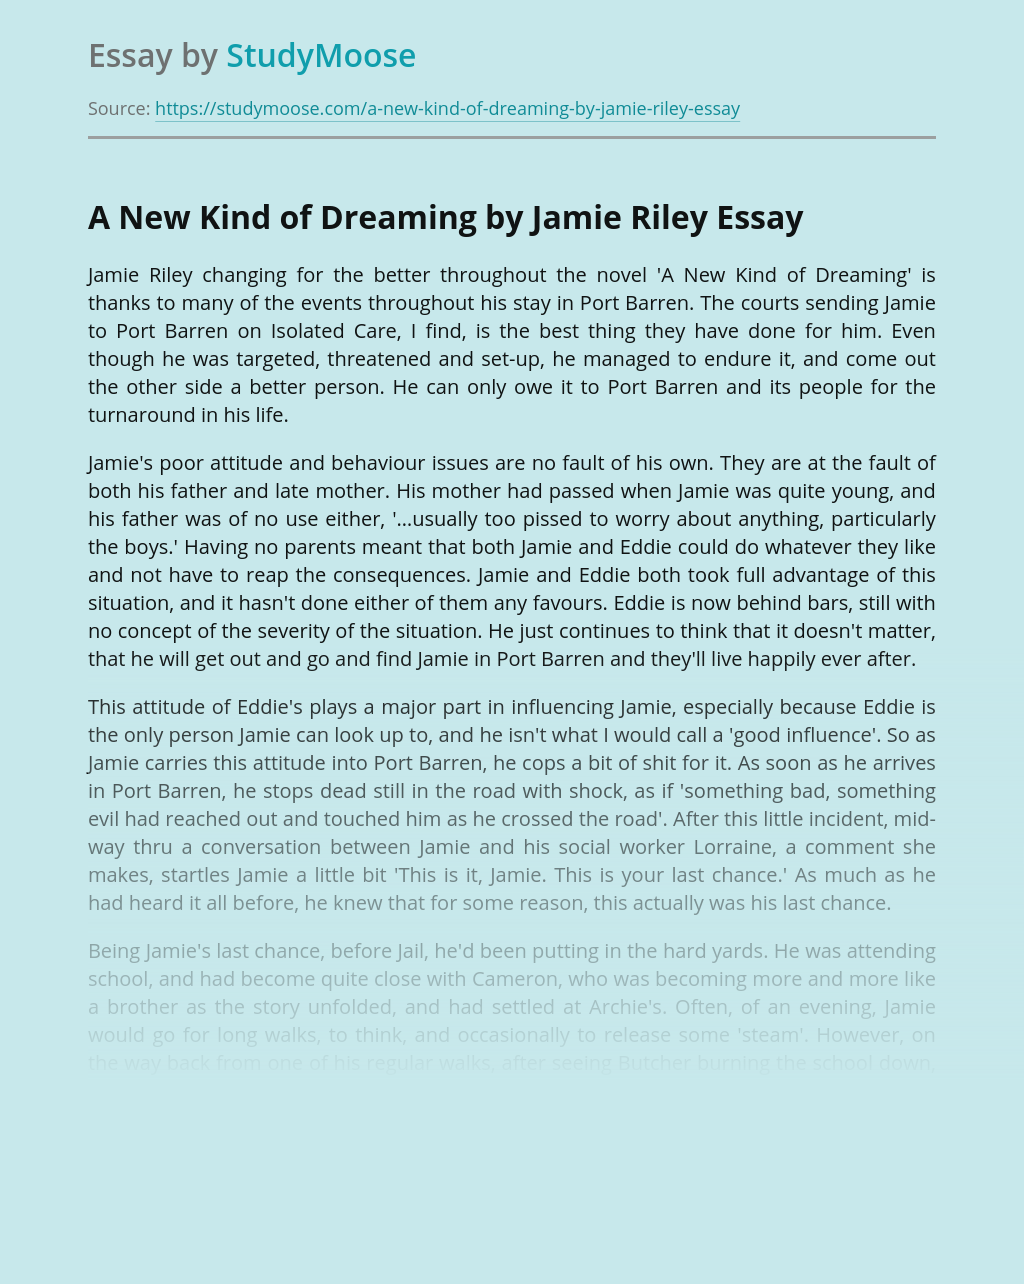 A New Kind of Dreaming by Jamie Riley